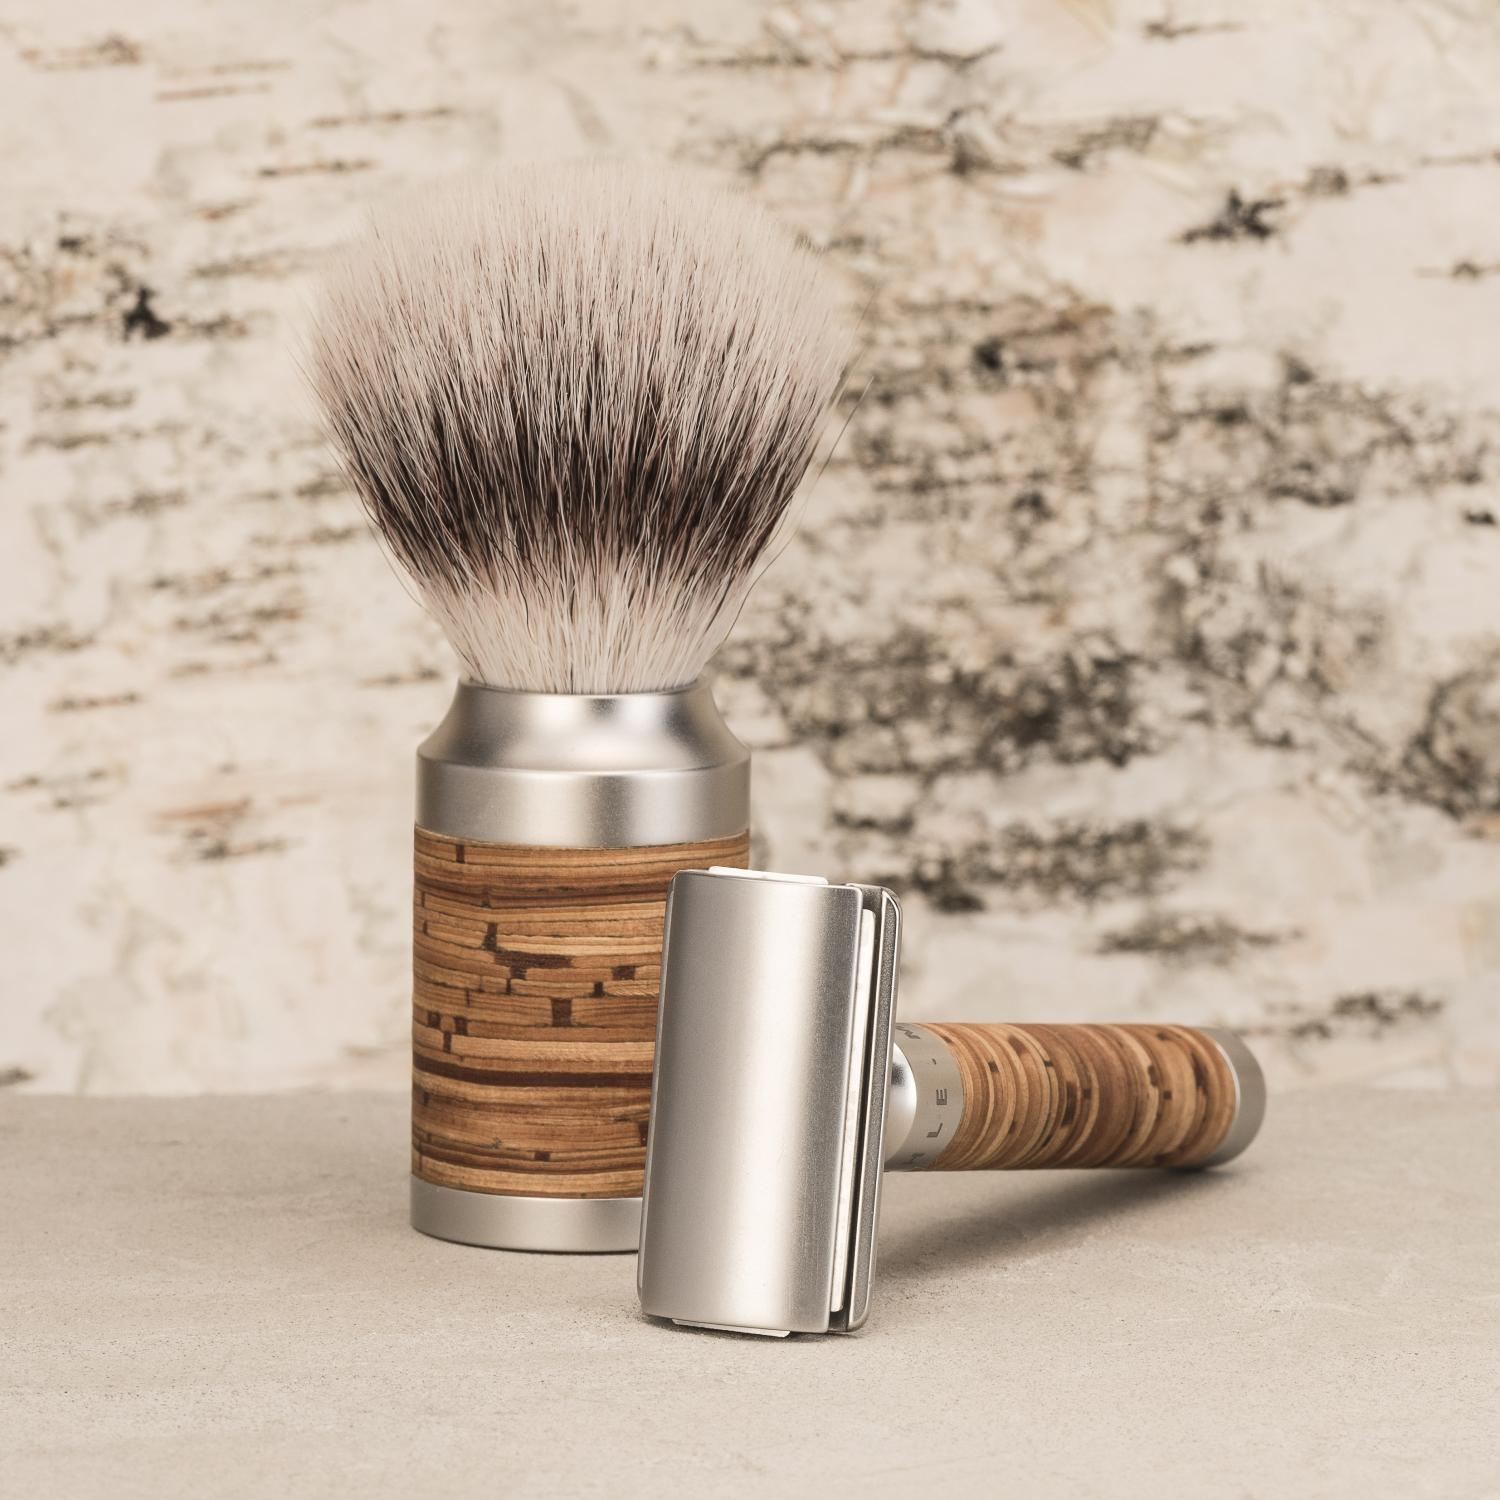 ROCCA steel and birch bark shaving set